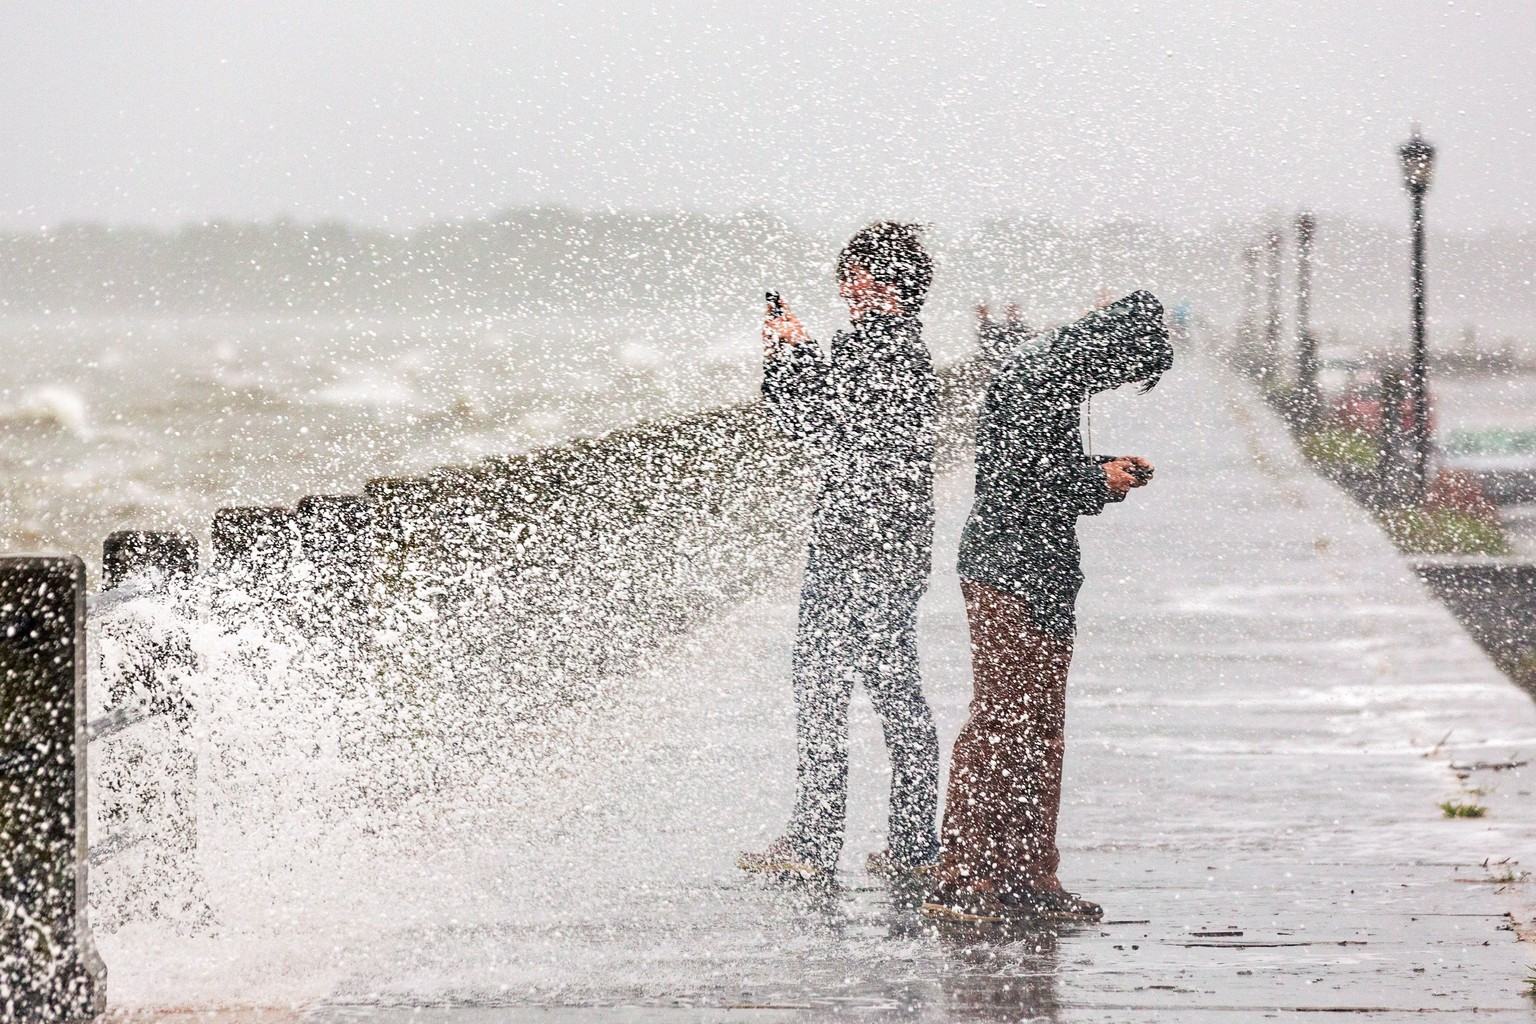 epa04962239 A group of tourists take photos as massive waves splash over the historic Battery as Hurricane Joaquin brings heavy rain, flooding and strong winds as it passes offshore in Charleston, SC, USA, 03 October 2015. Flood warnings and watches were posted in several eastern US states where more heavy rainfall was forecast to reach accumulations of up to 25 centimetres in already saturated areas. Hurricane Joaquin, which has moved to the west of Bermuda over open ocean, is partially to blame for the rainfall, the weather service said. But the storm is expected to turn toward the north-northeast on Sunday and not ram the east coast of the United States.  EPA/RICHARD ELLIS